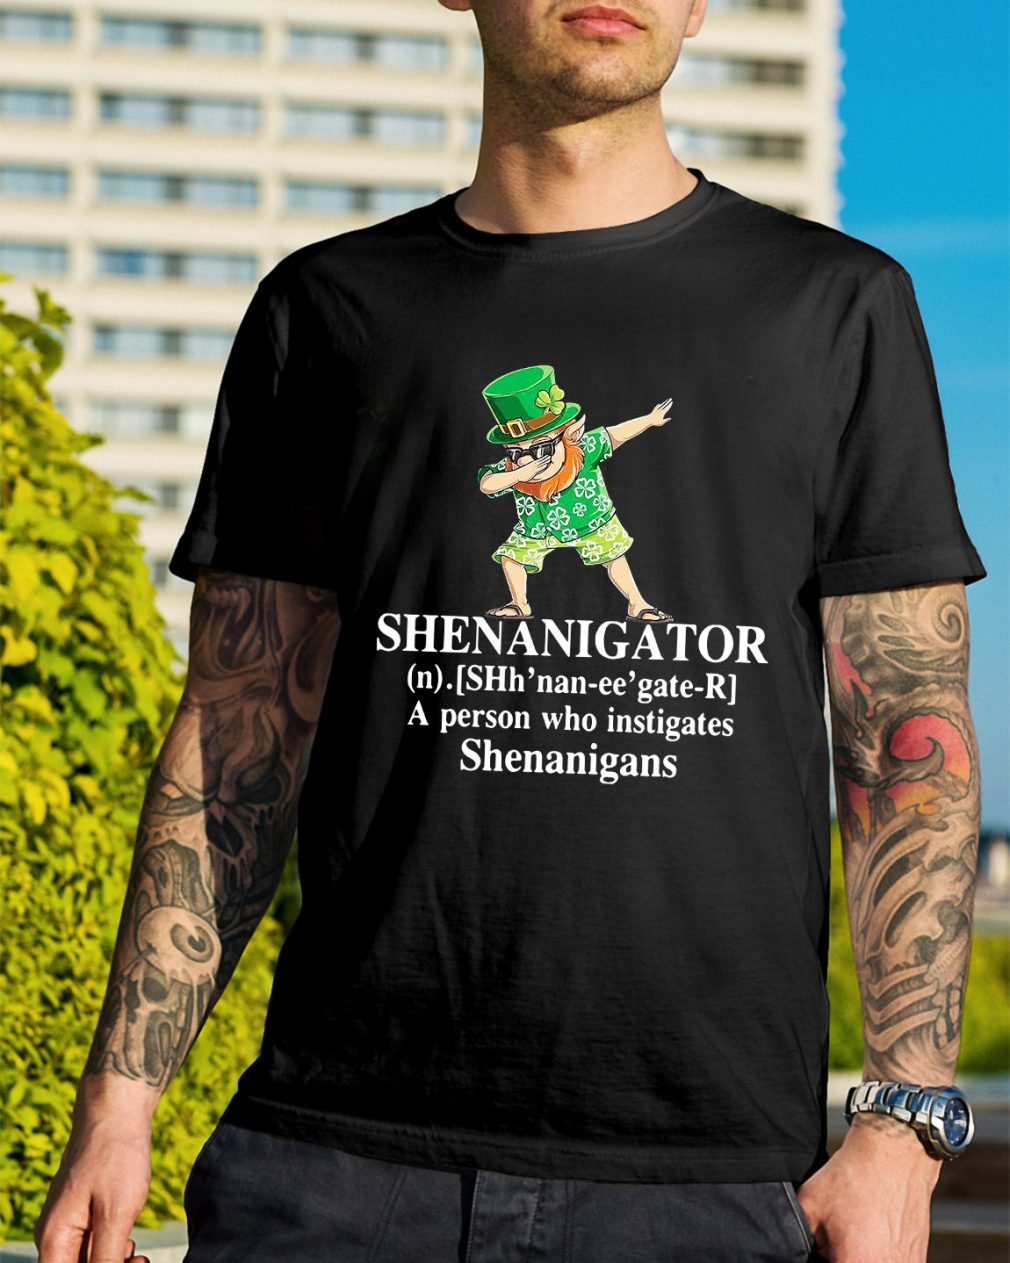 Shenanigator definition a person who instigates Shenanigans shirt